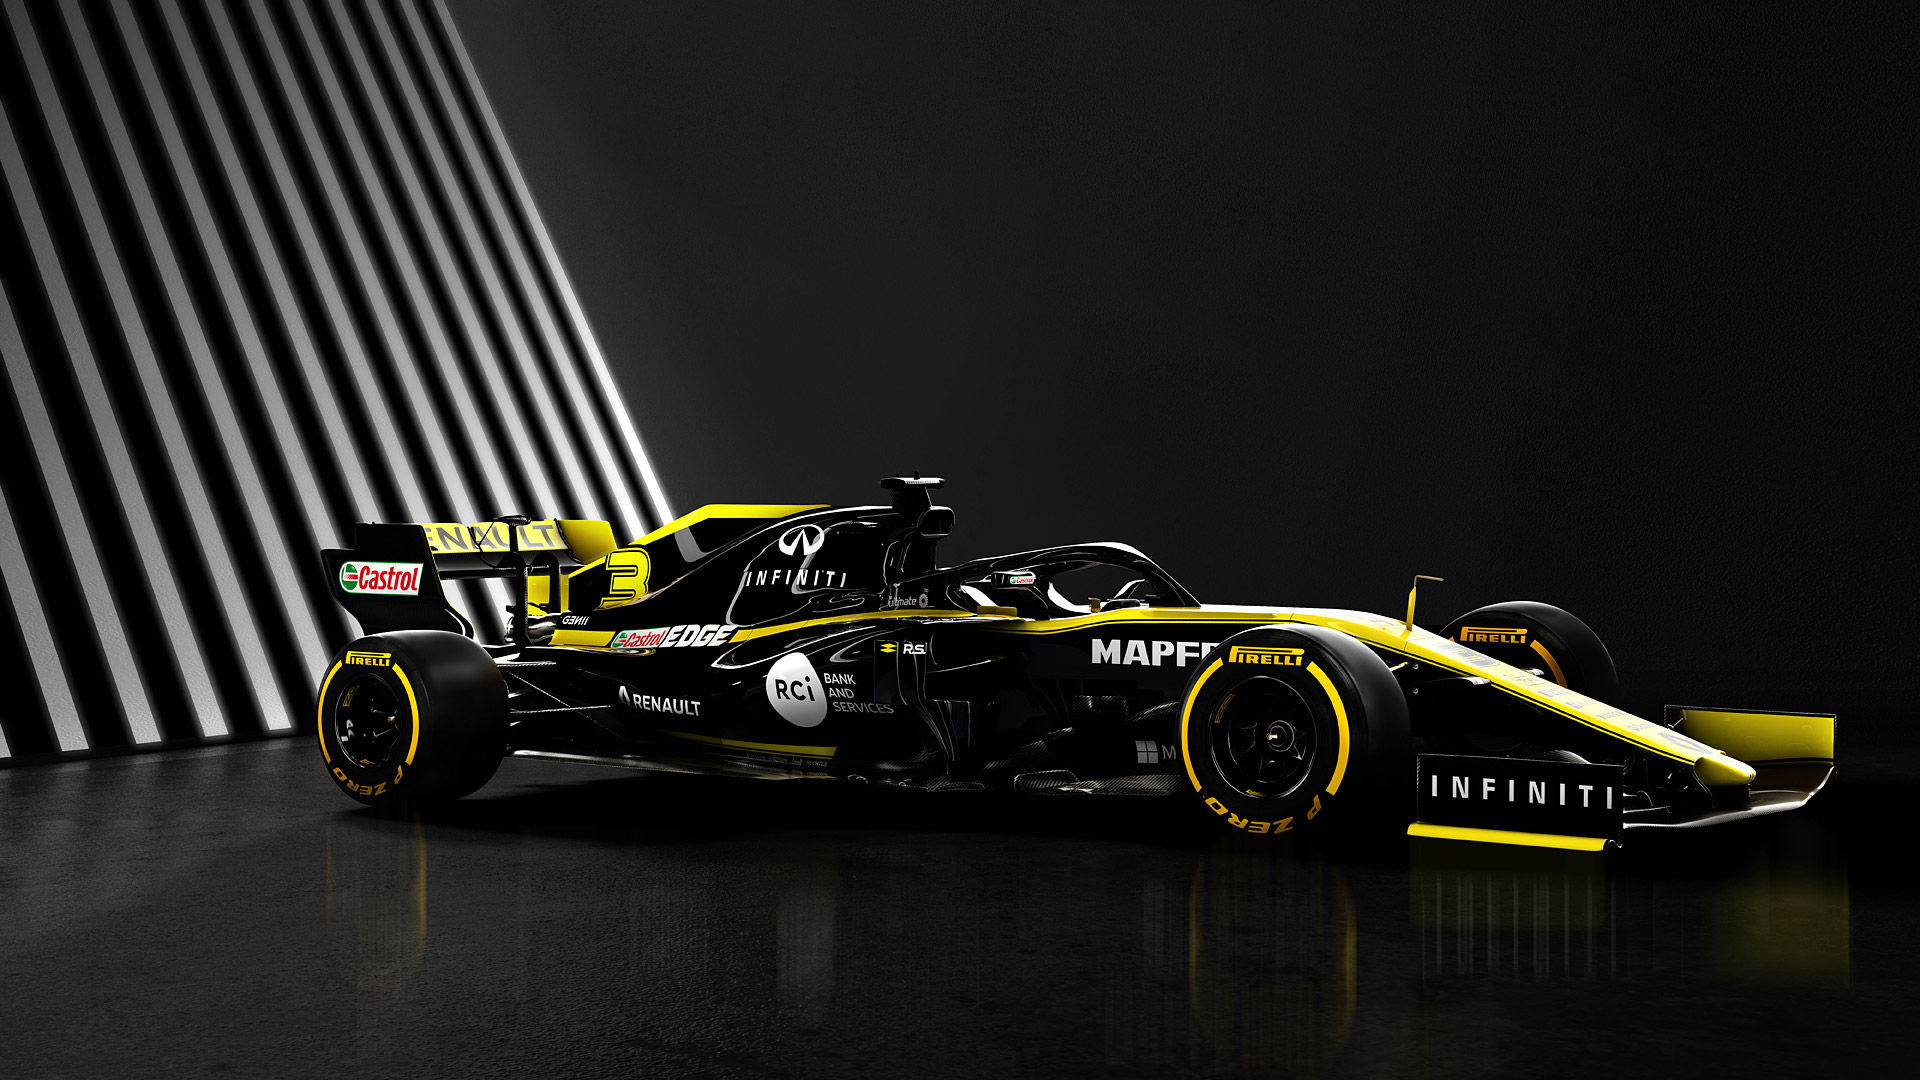 2019 Renault RS19